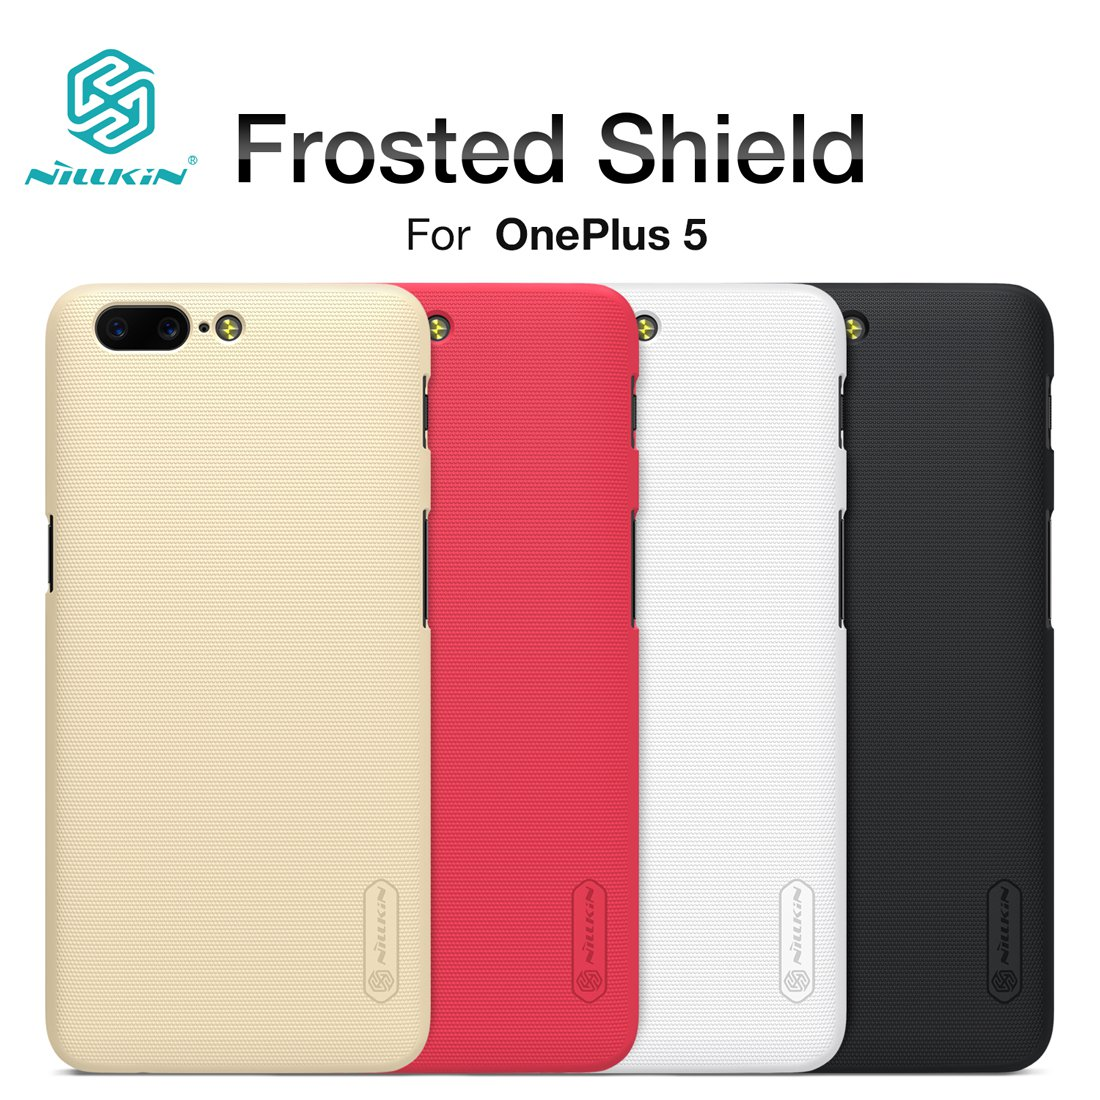 Nillkin Frosted Shield Matte Case for OnePlus 5 Case Cover (Black)